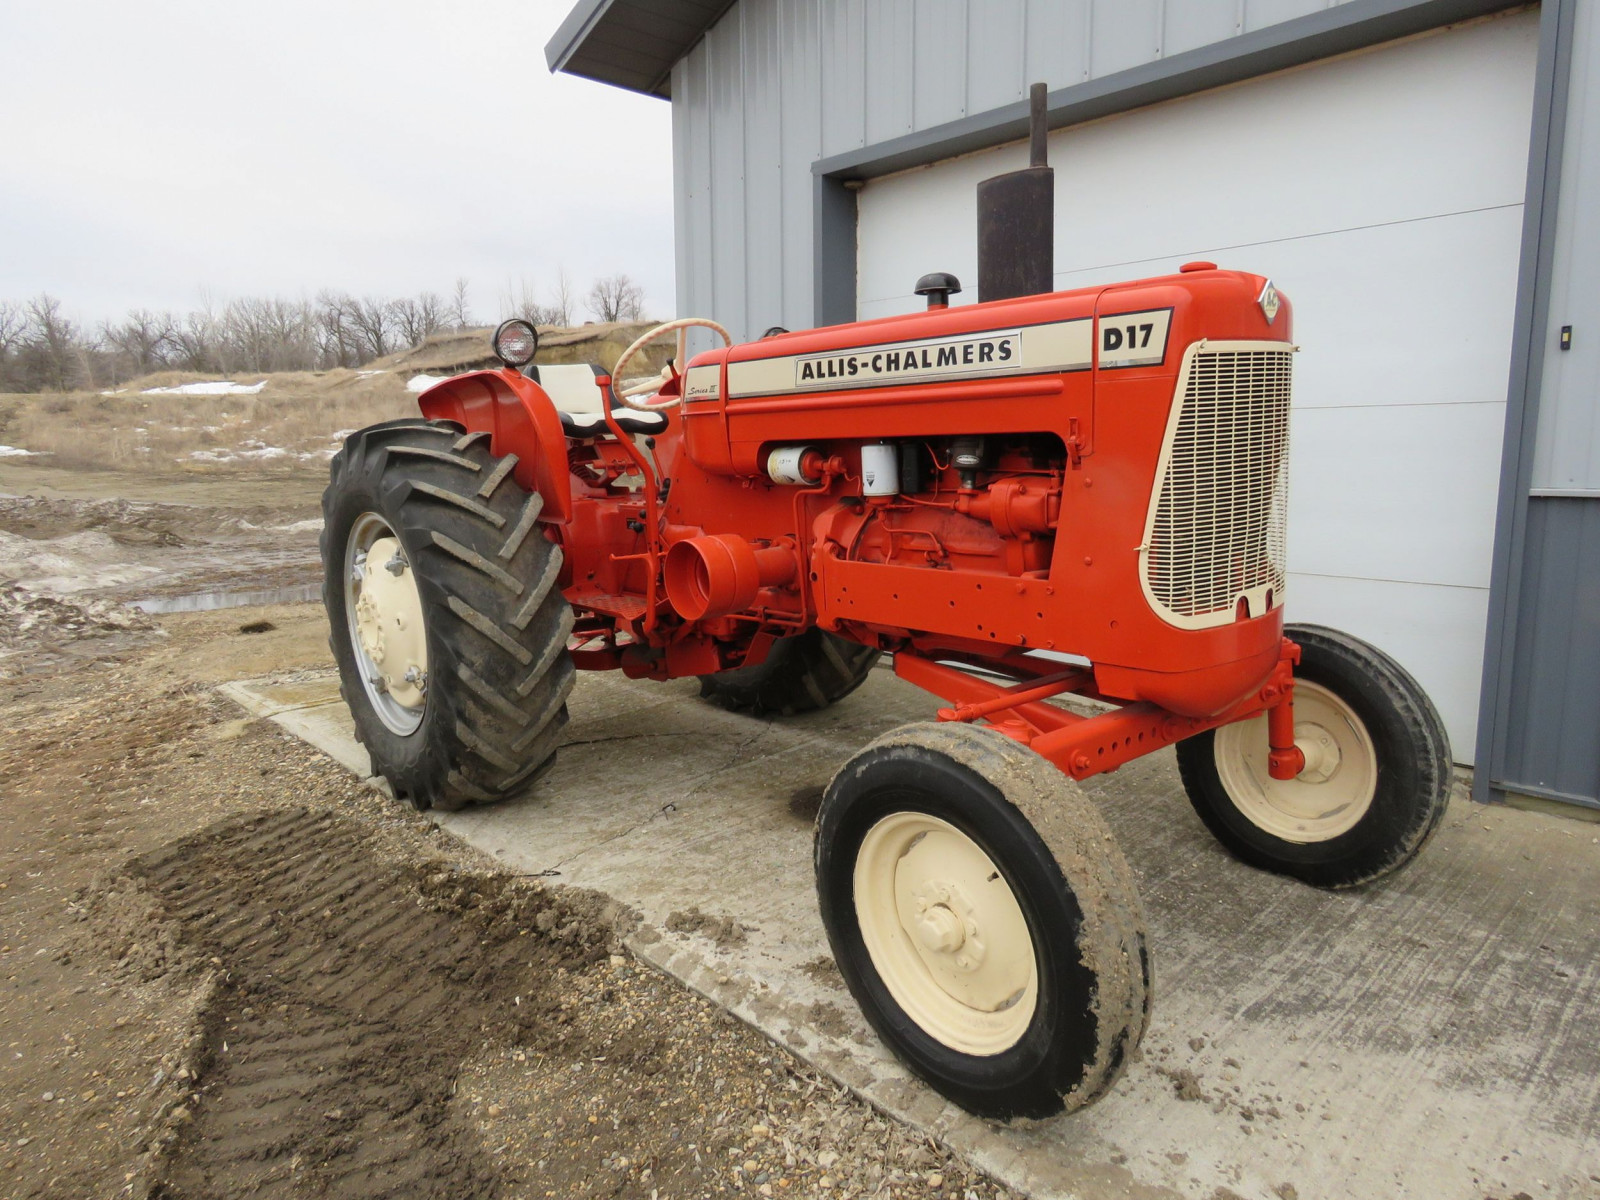 Allis Chalmers D17 Tractor - Image 3